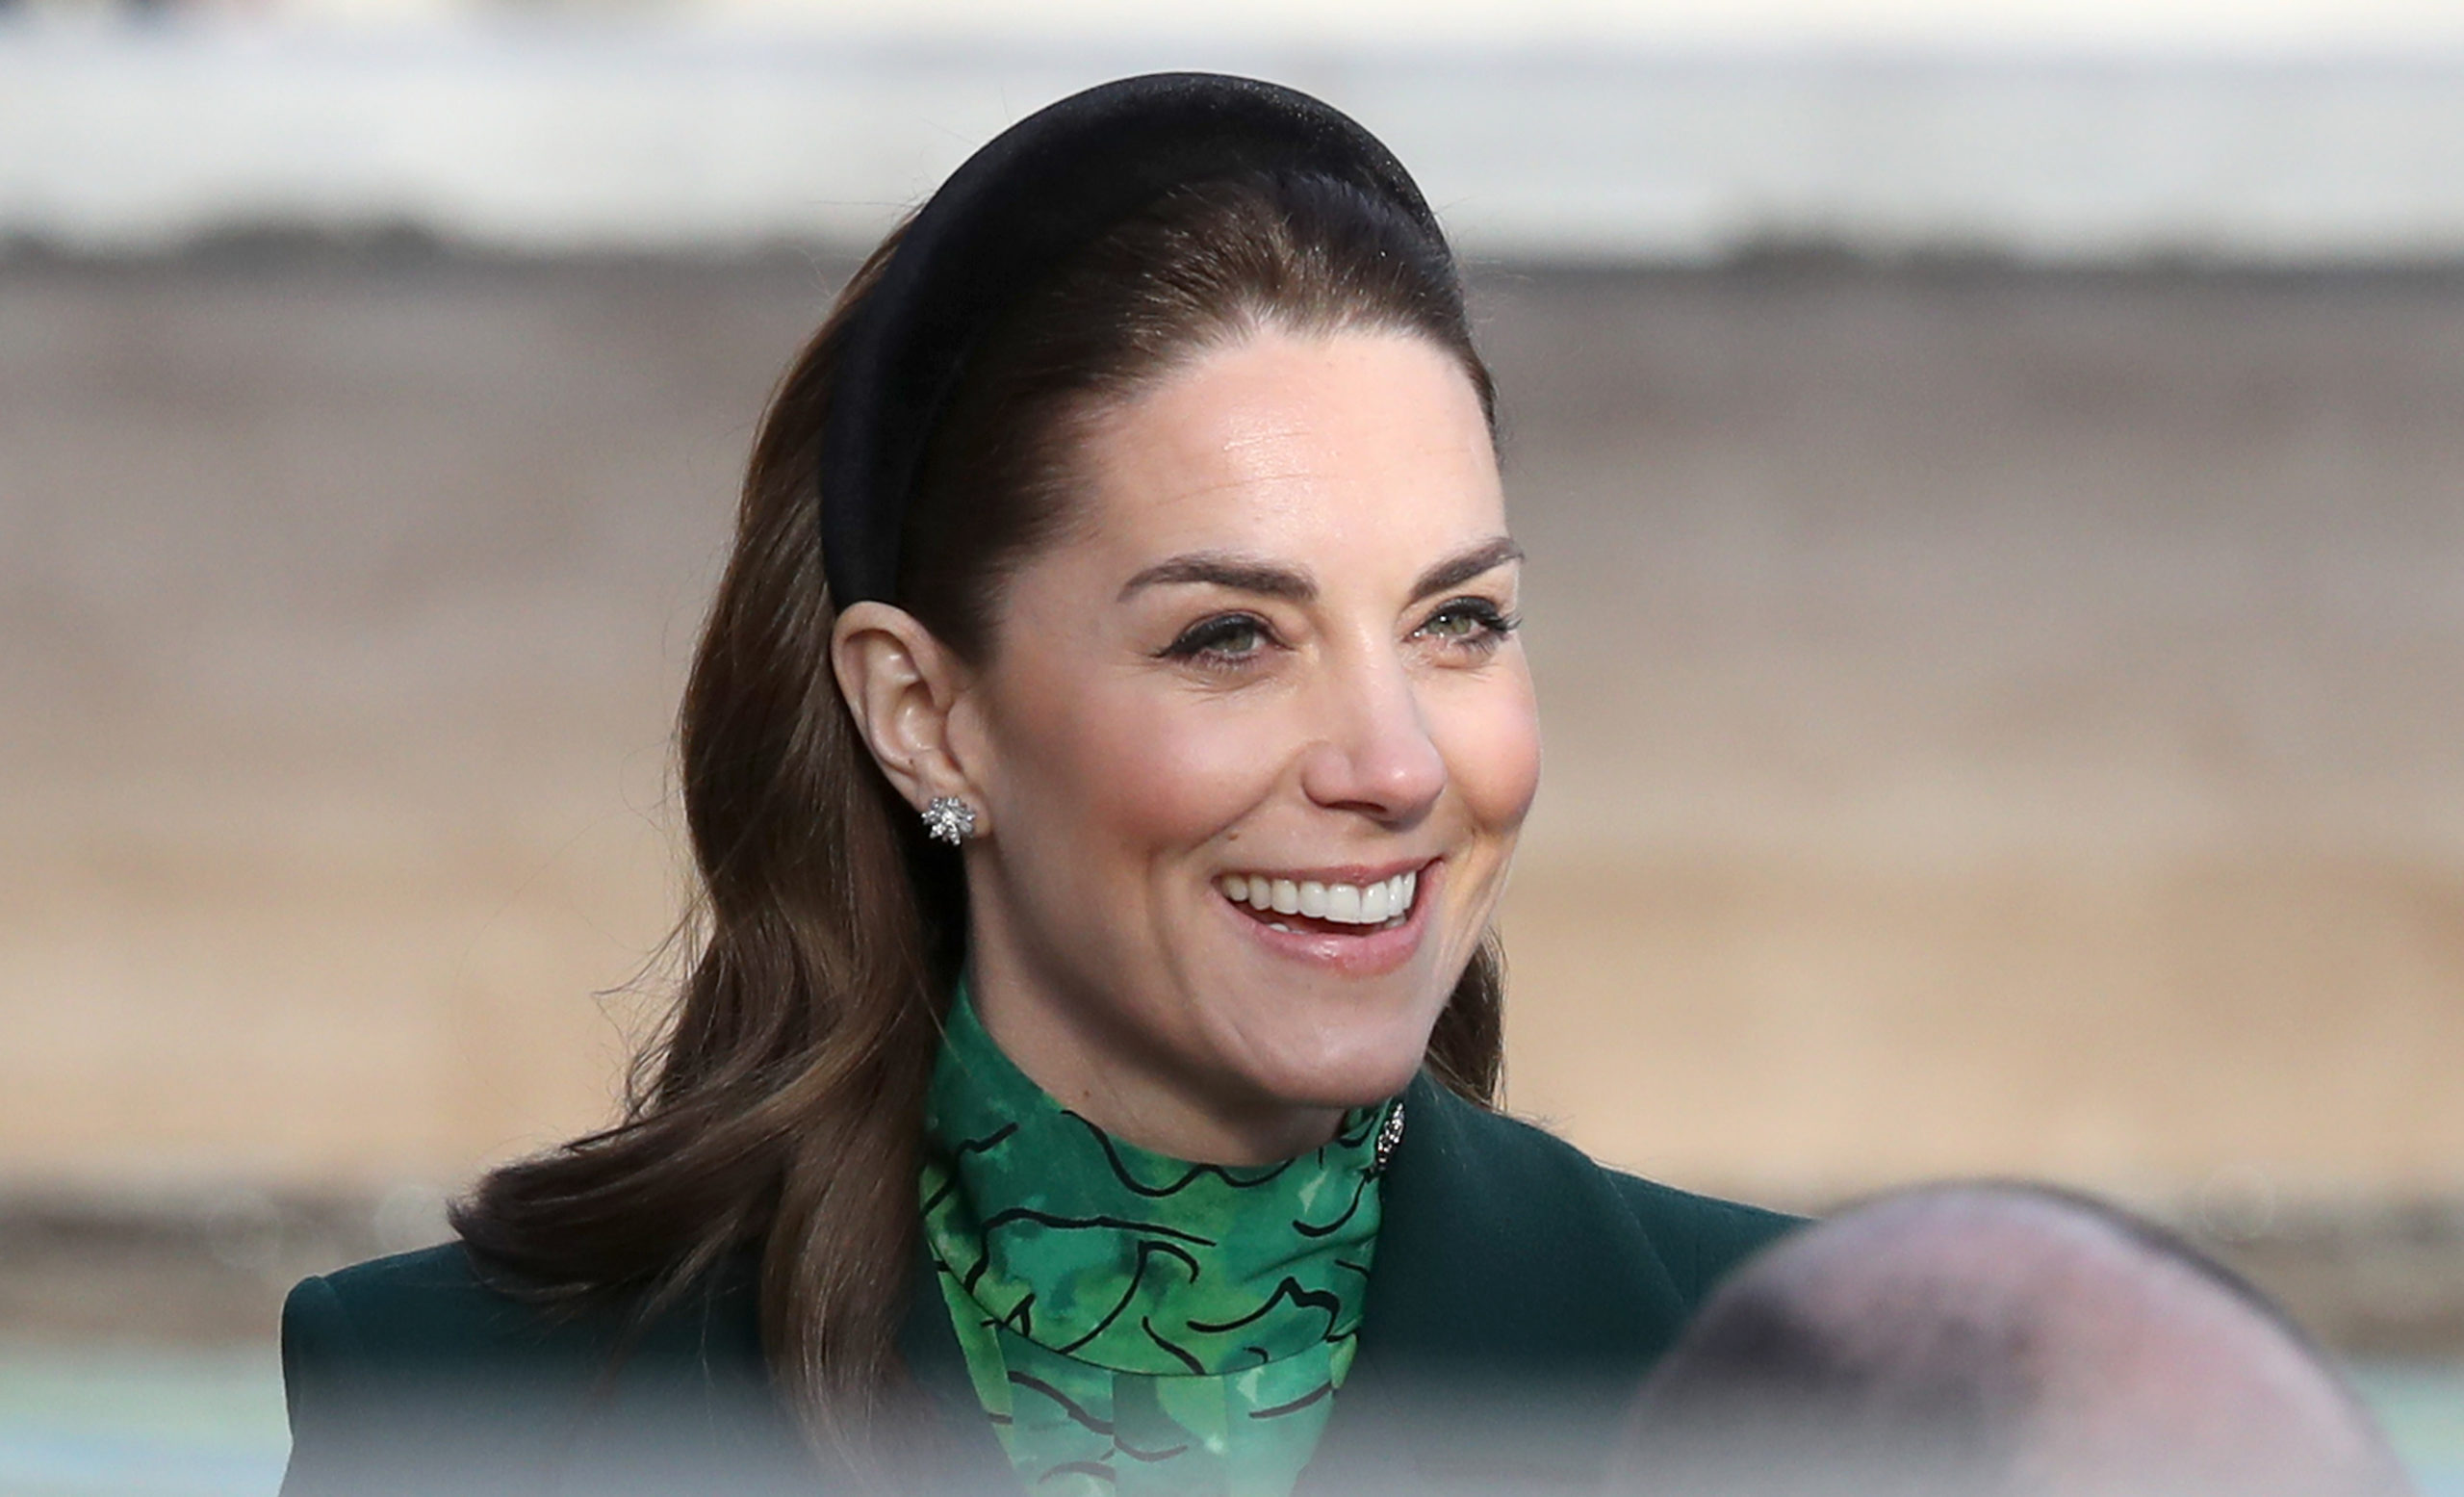 Kate Middleton inizia il tour in Irlanda con un cappotto verde di Catherine Walker